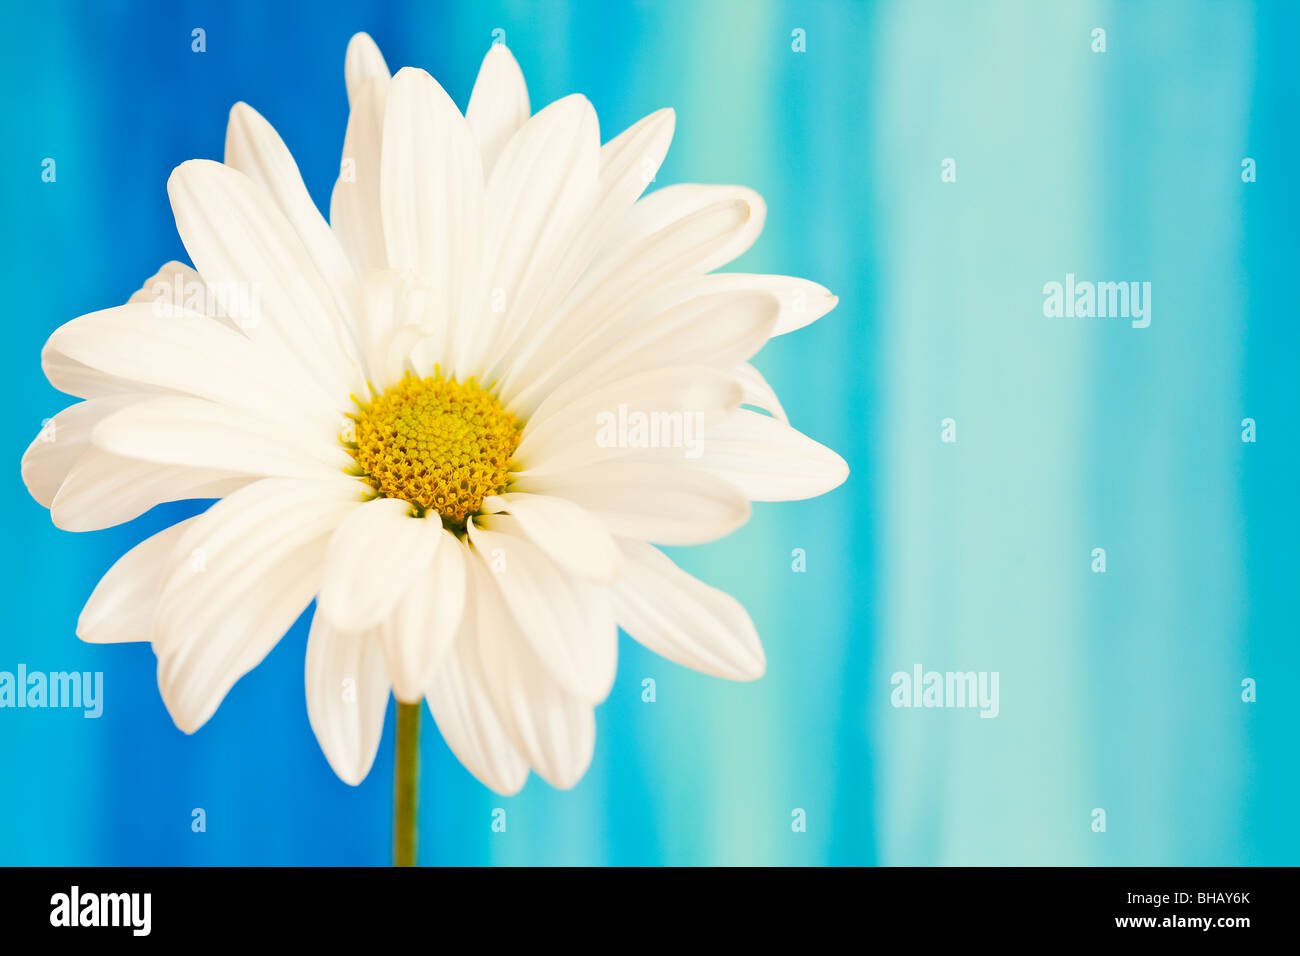 white and yellow daisy on a handpained watercolor background Stock Photo